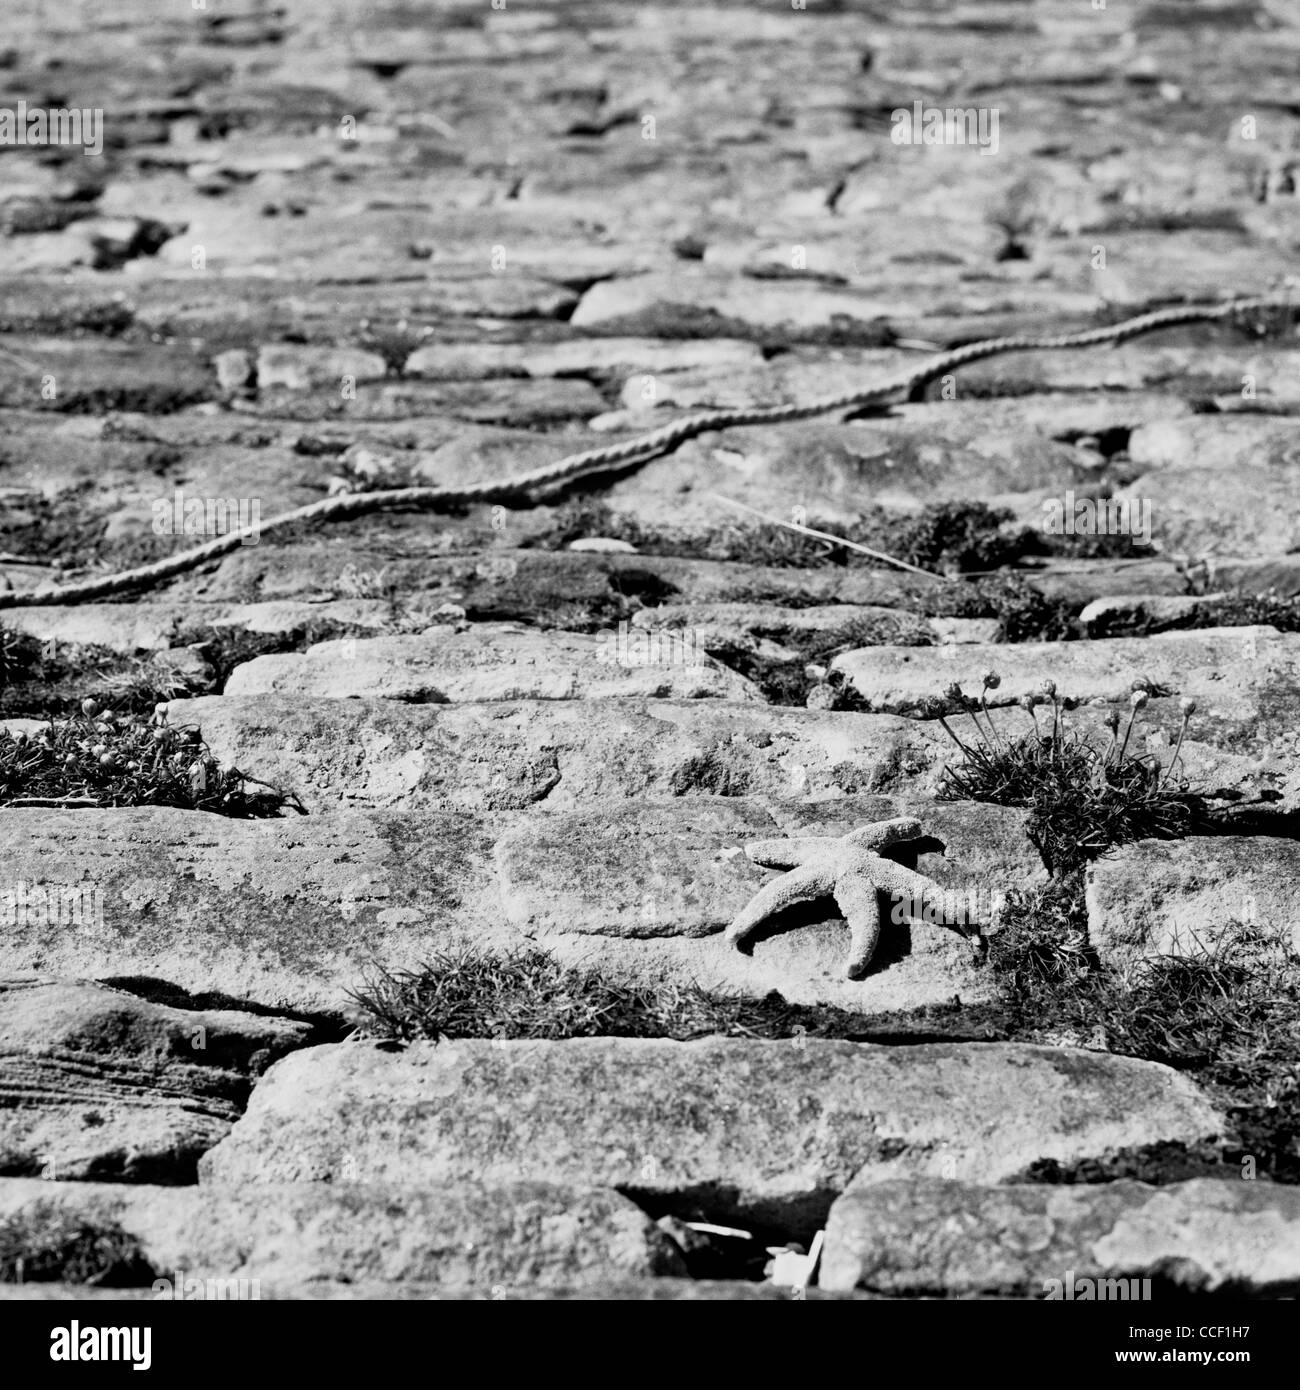 A starfish on a cobbled harbour quayside, near to the town of Thurso, North Coast of Scotland. - Stock Image